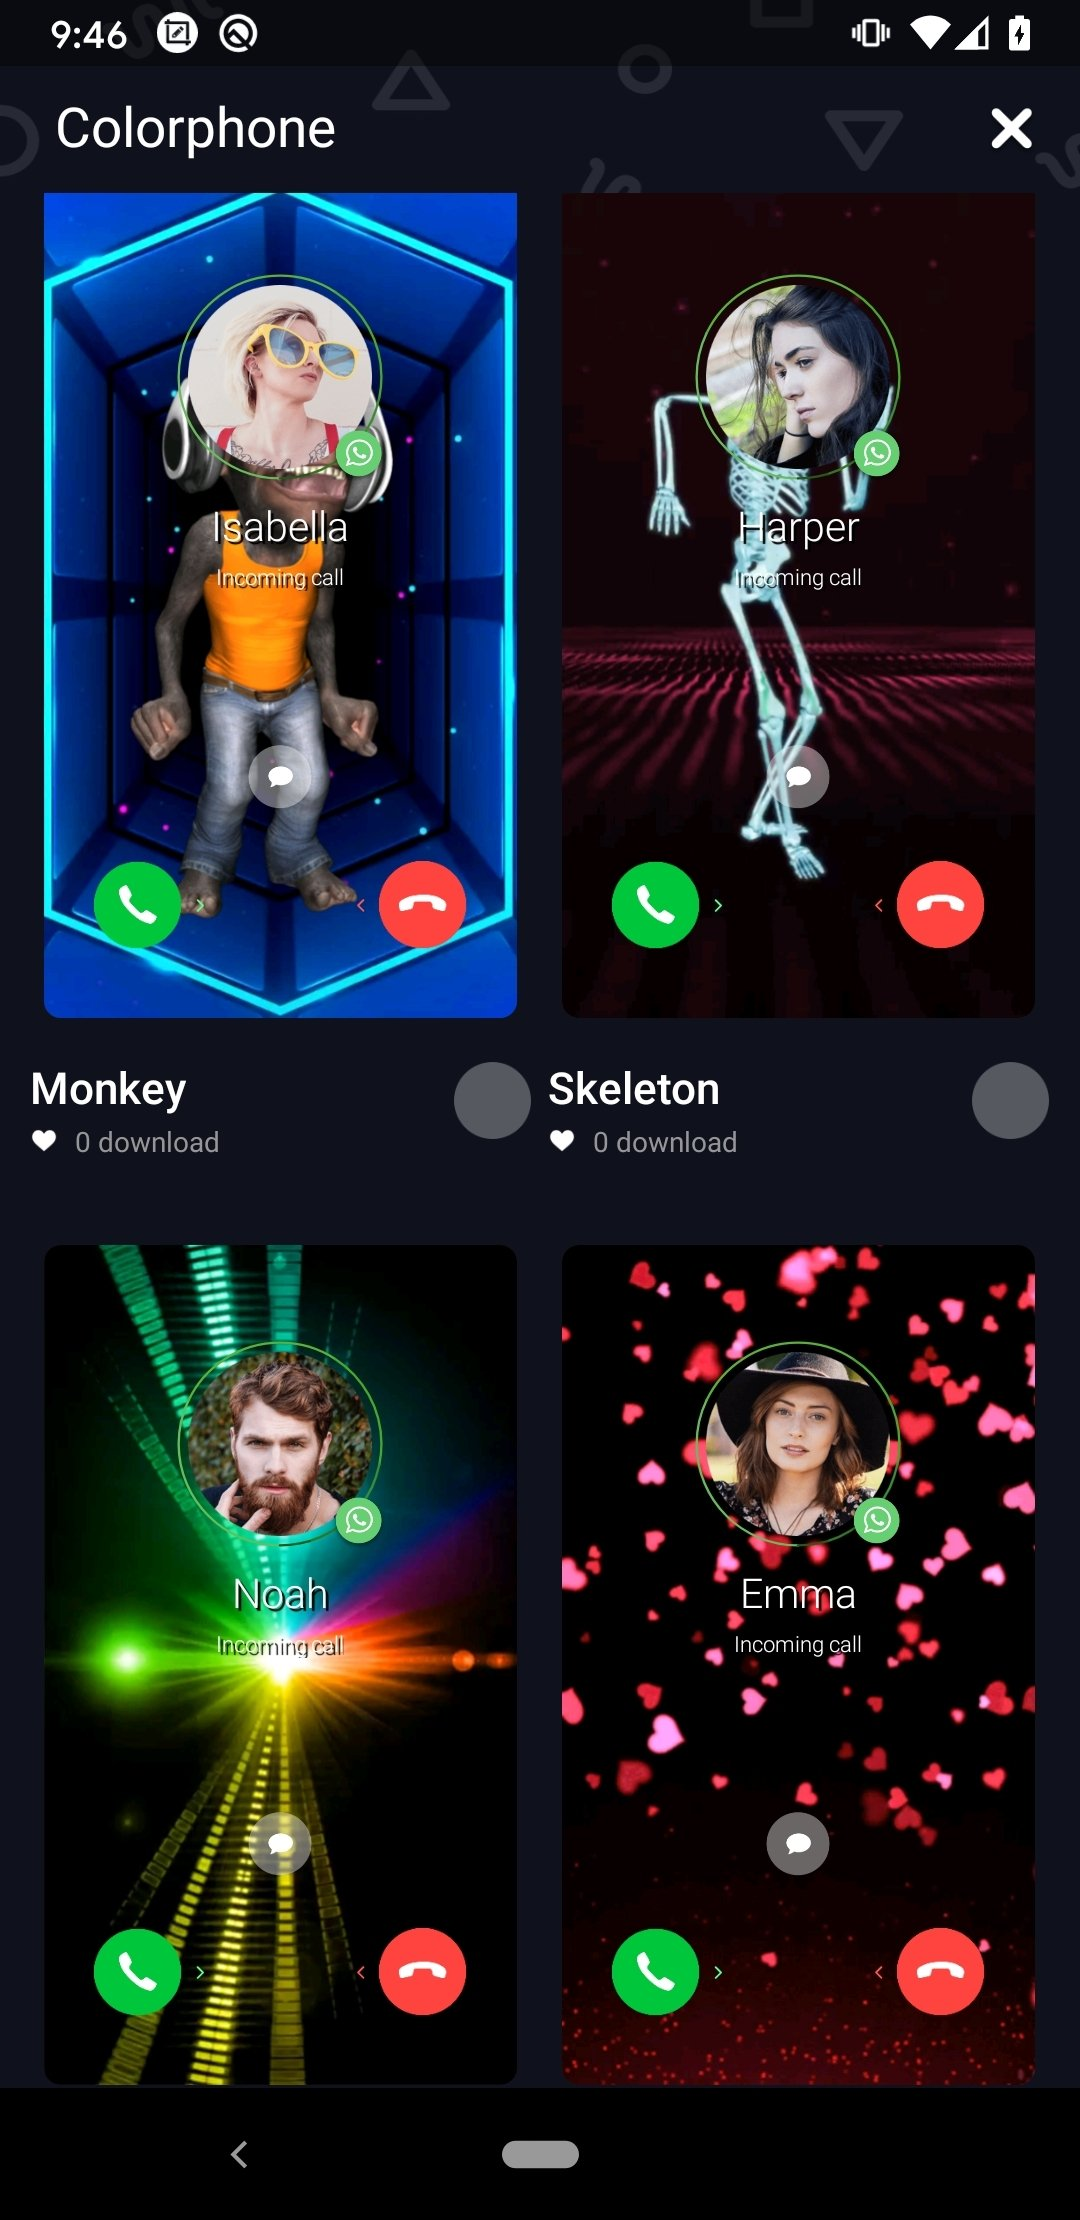 yowhatsapp apk v7.60 】download latest version for android 2018